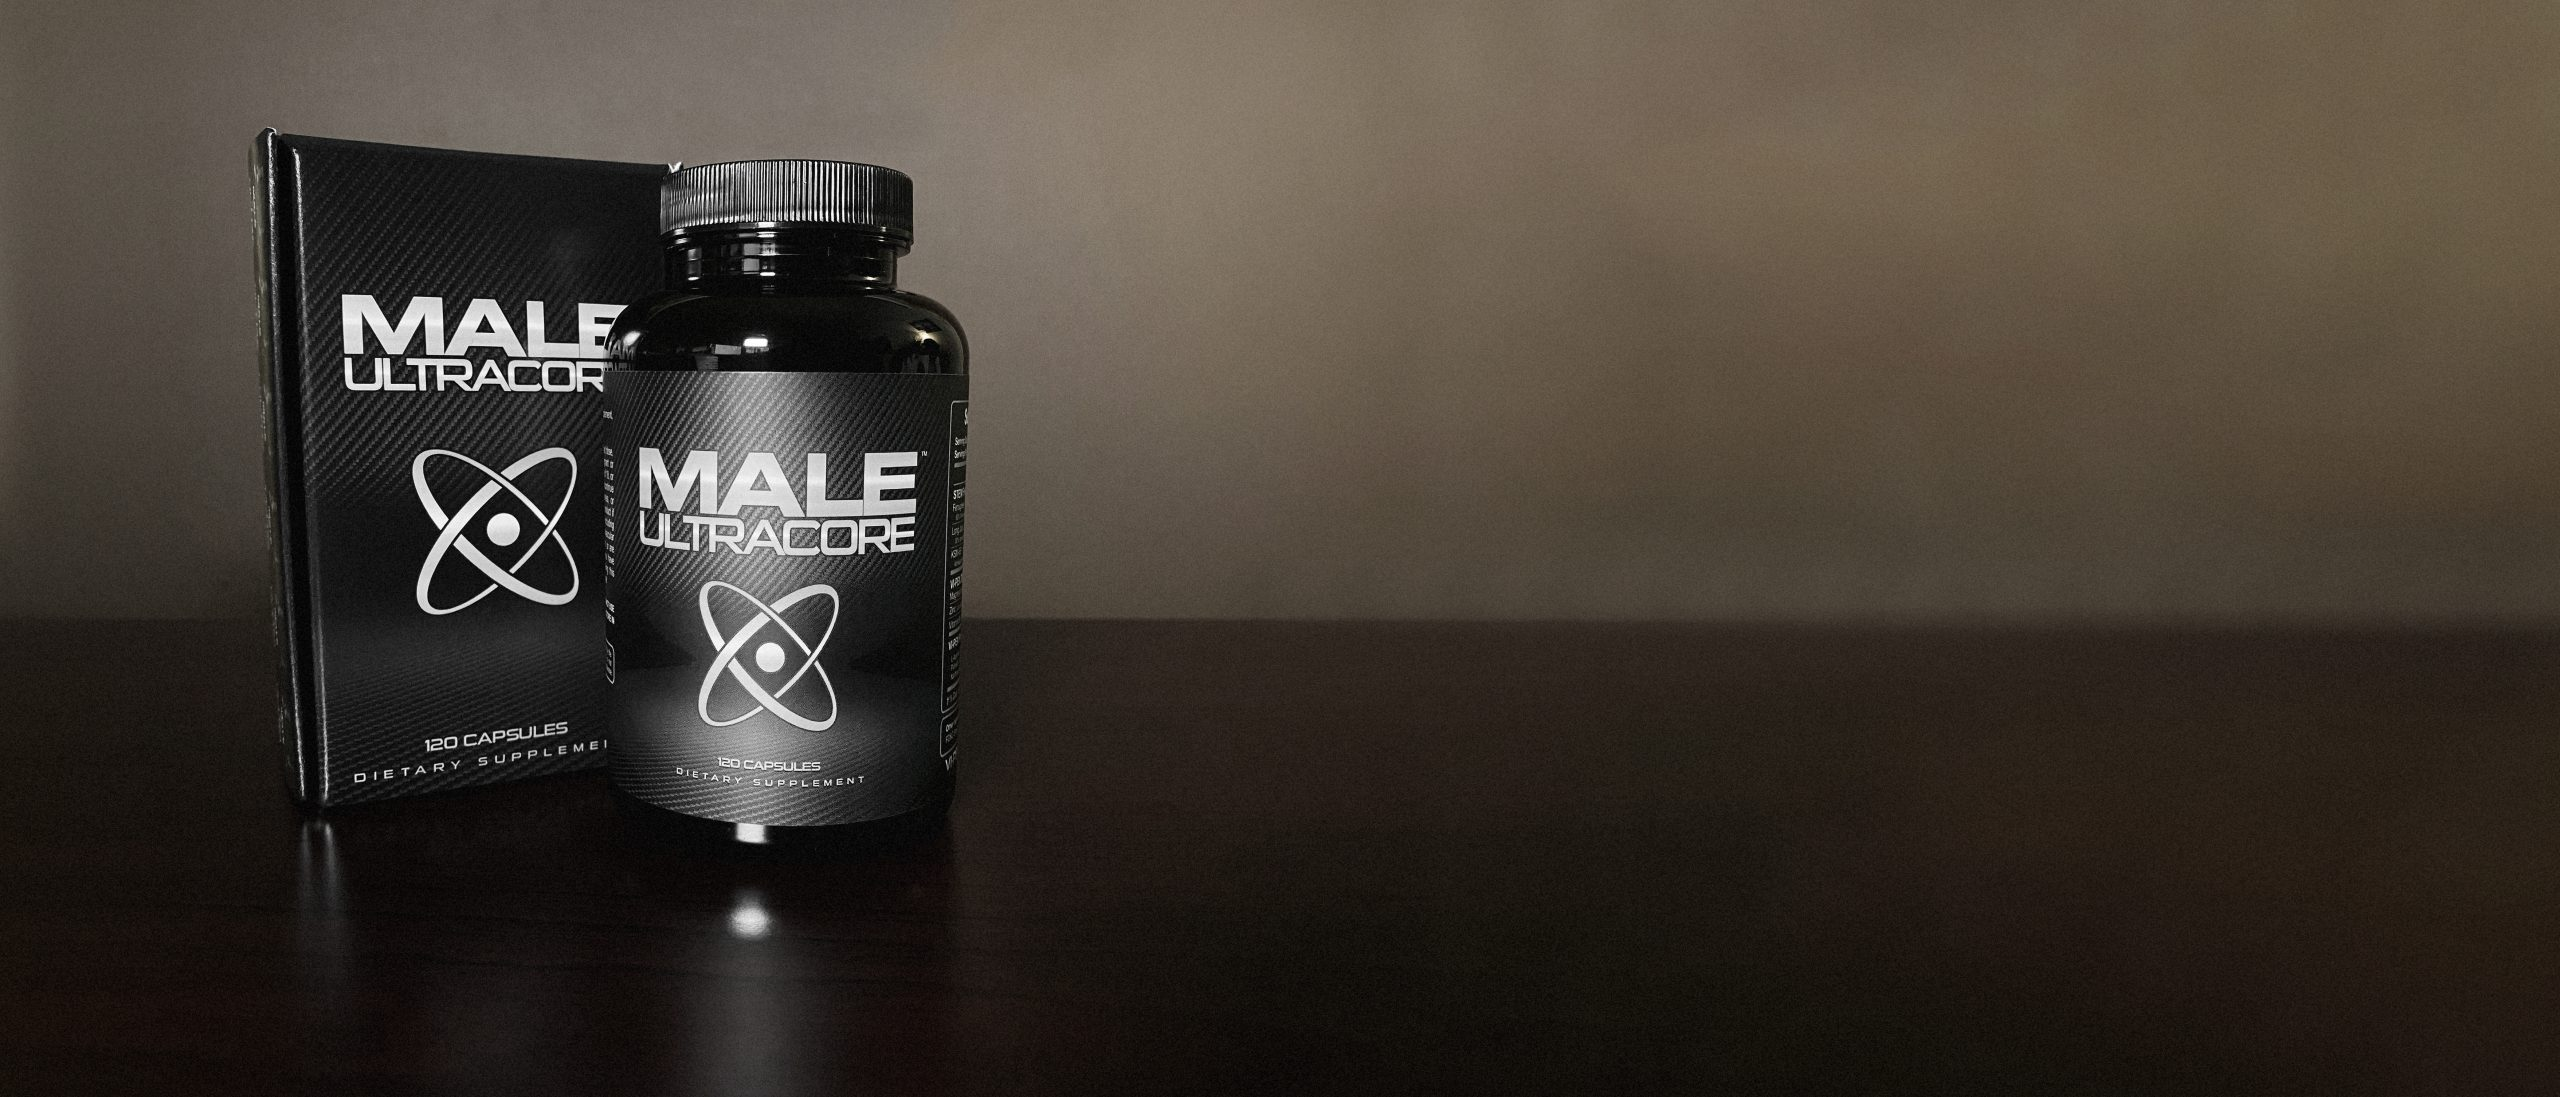 Male UltraCore Review – Should you buy Male UltraCore?